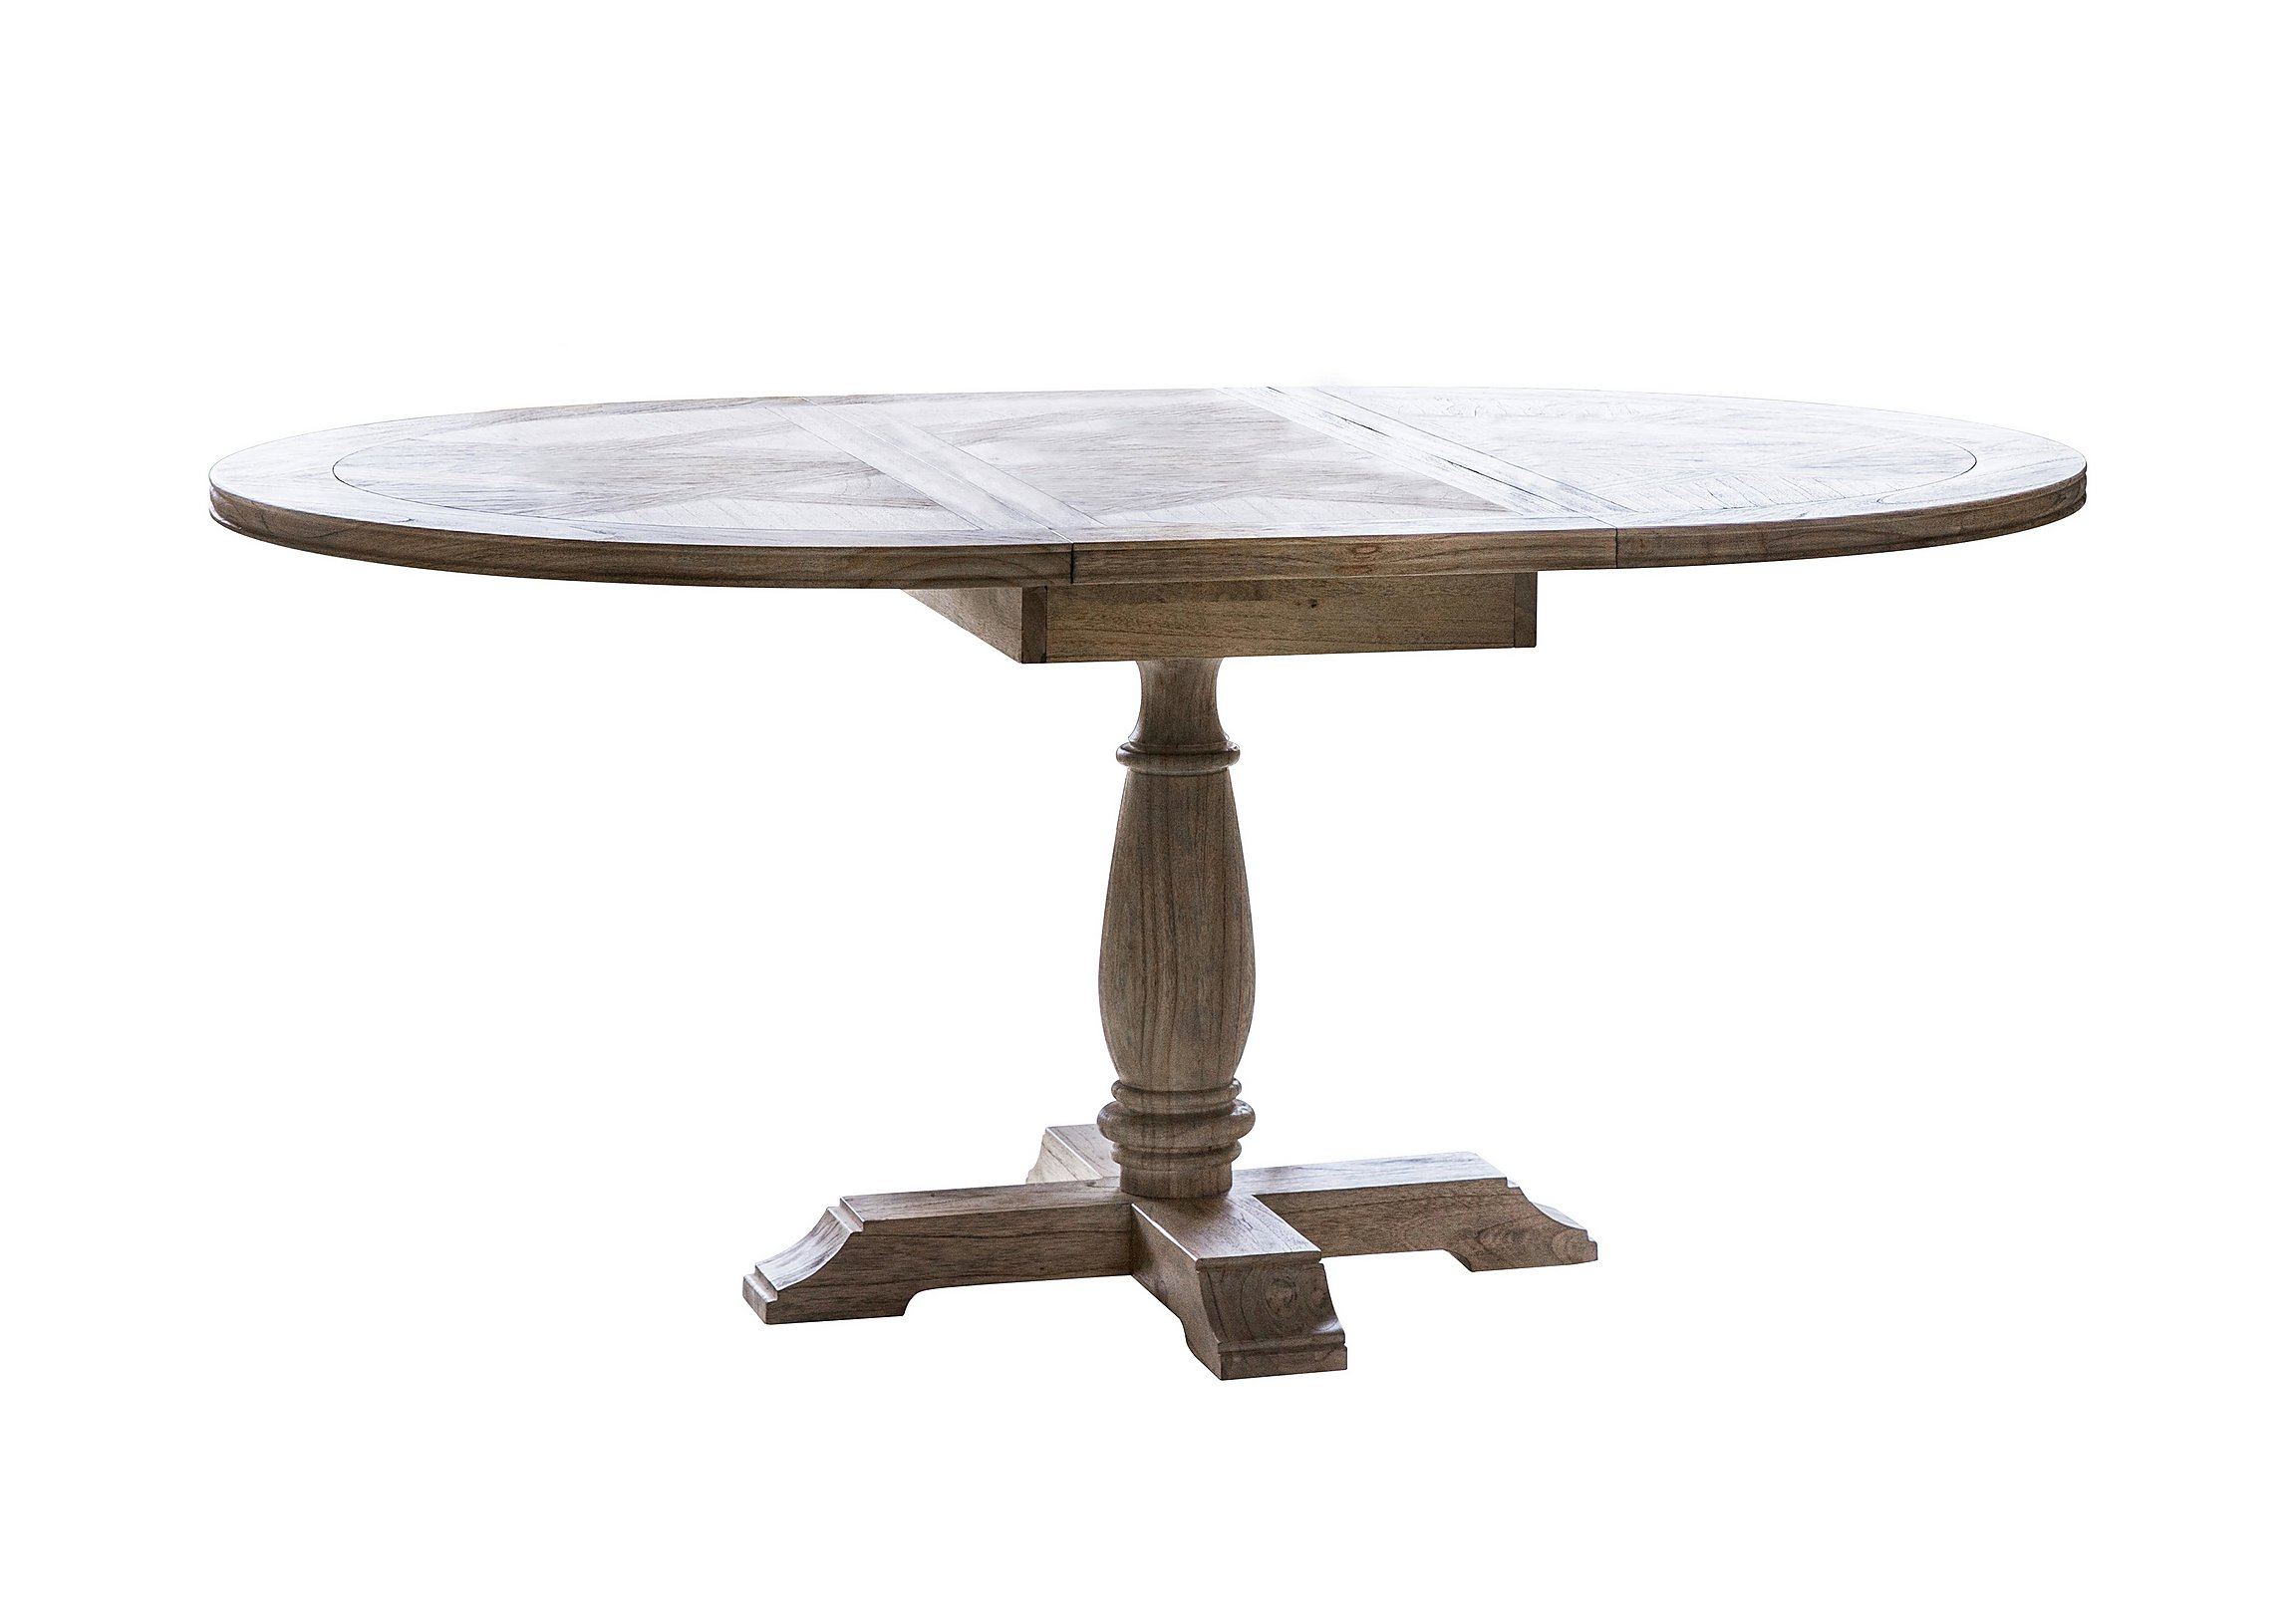 Unique Round Dining Table That Extends Light Of Dining Room